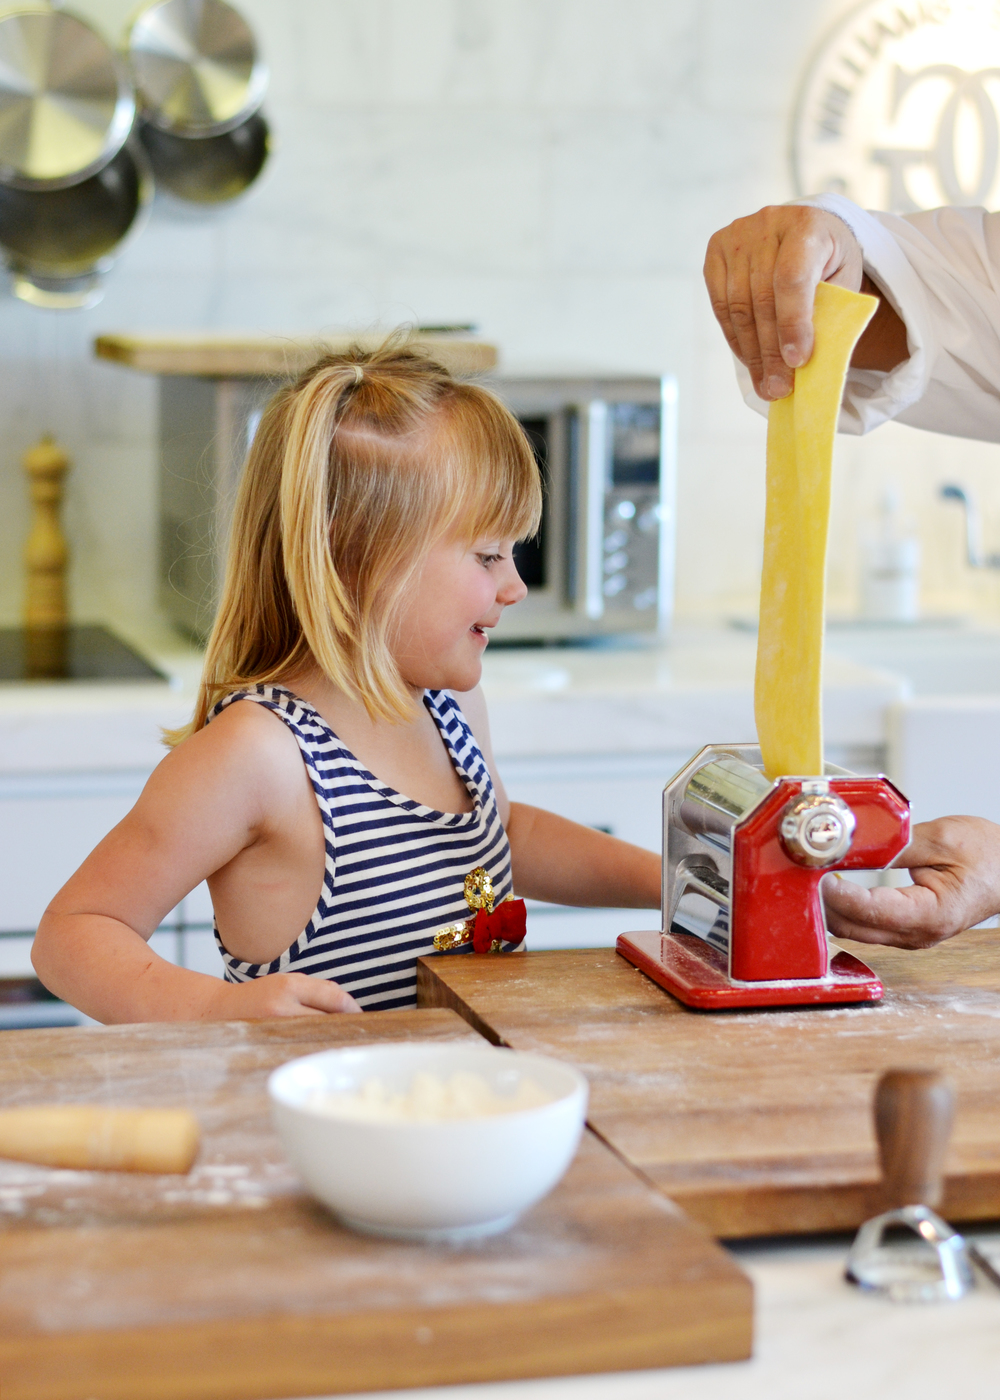 Junior chef classes at Williams-Sonoma | asavvylifestyle.com